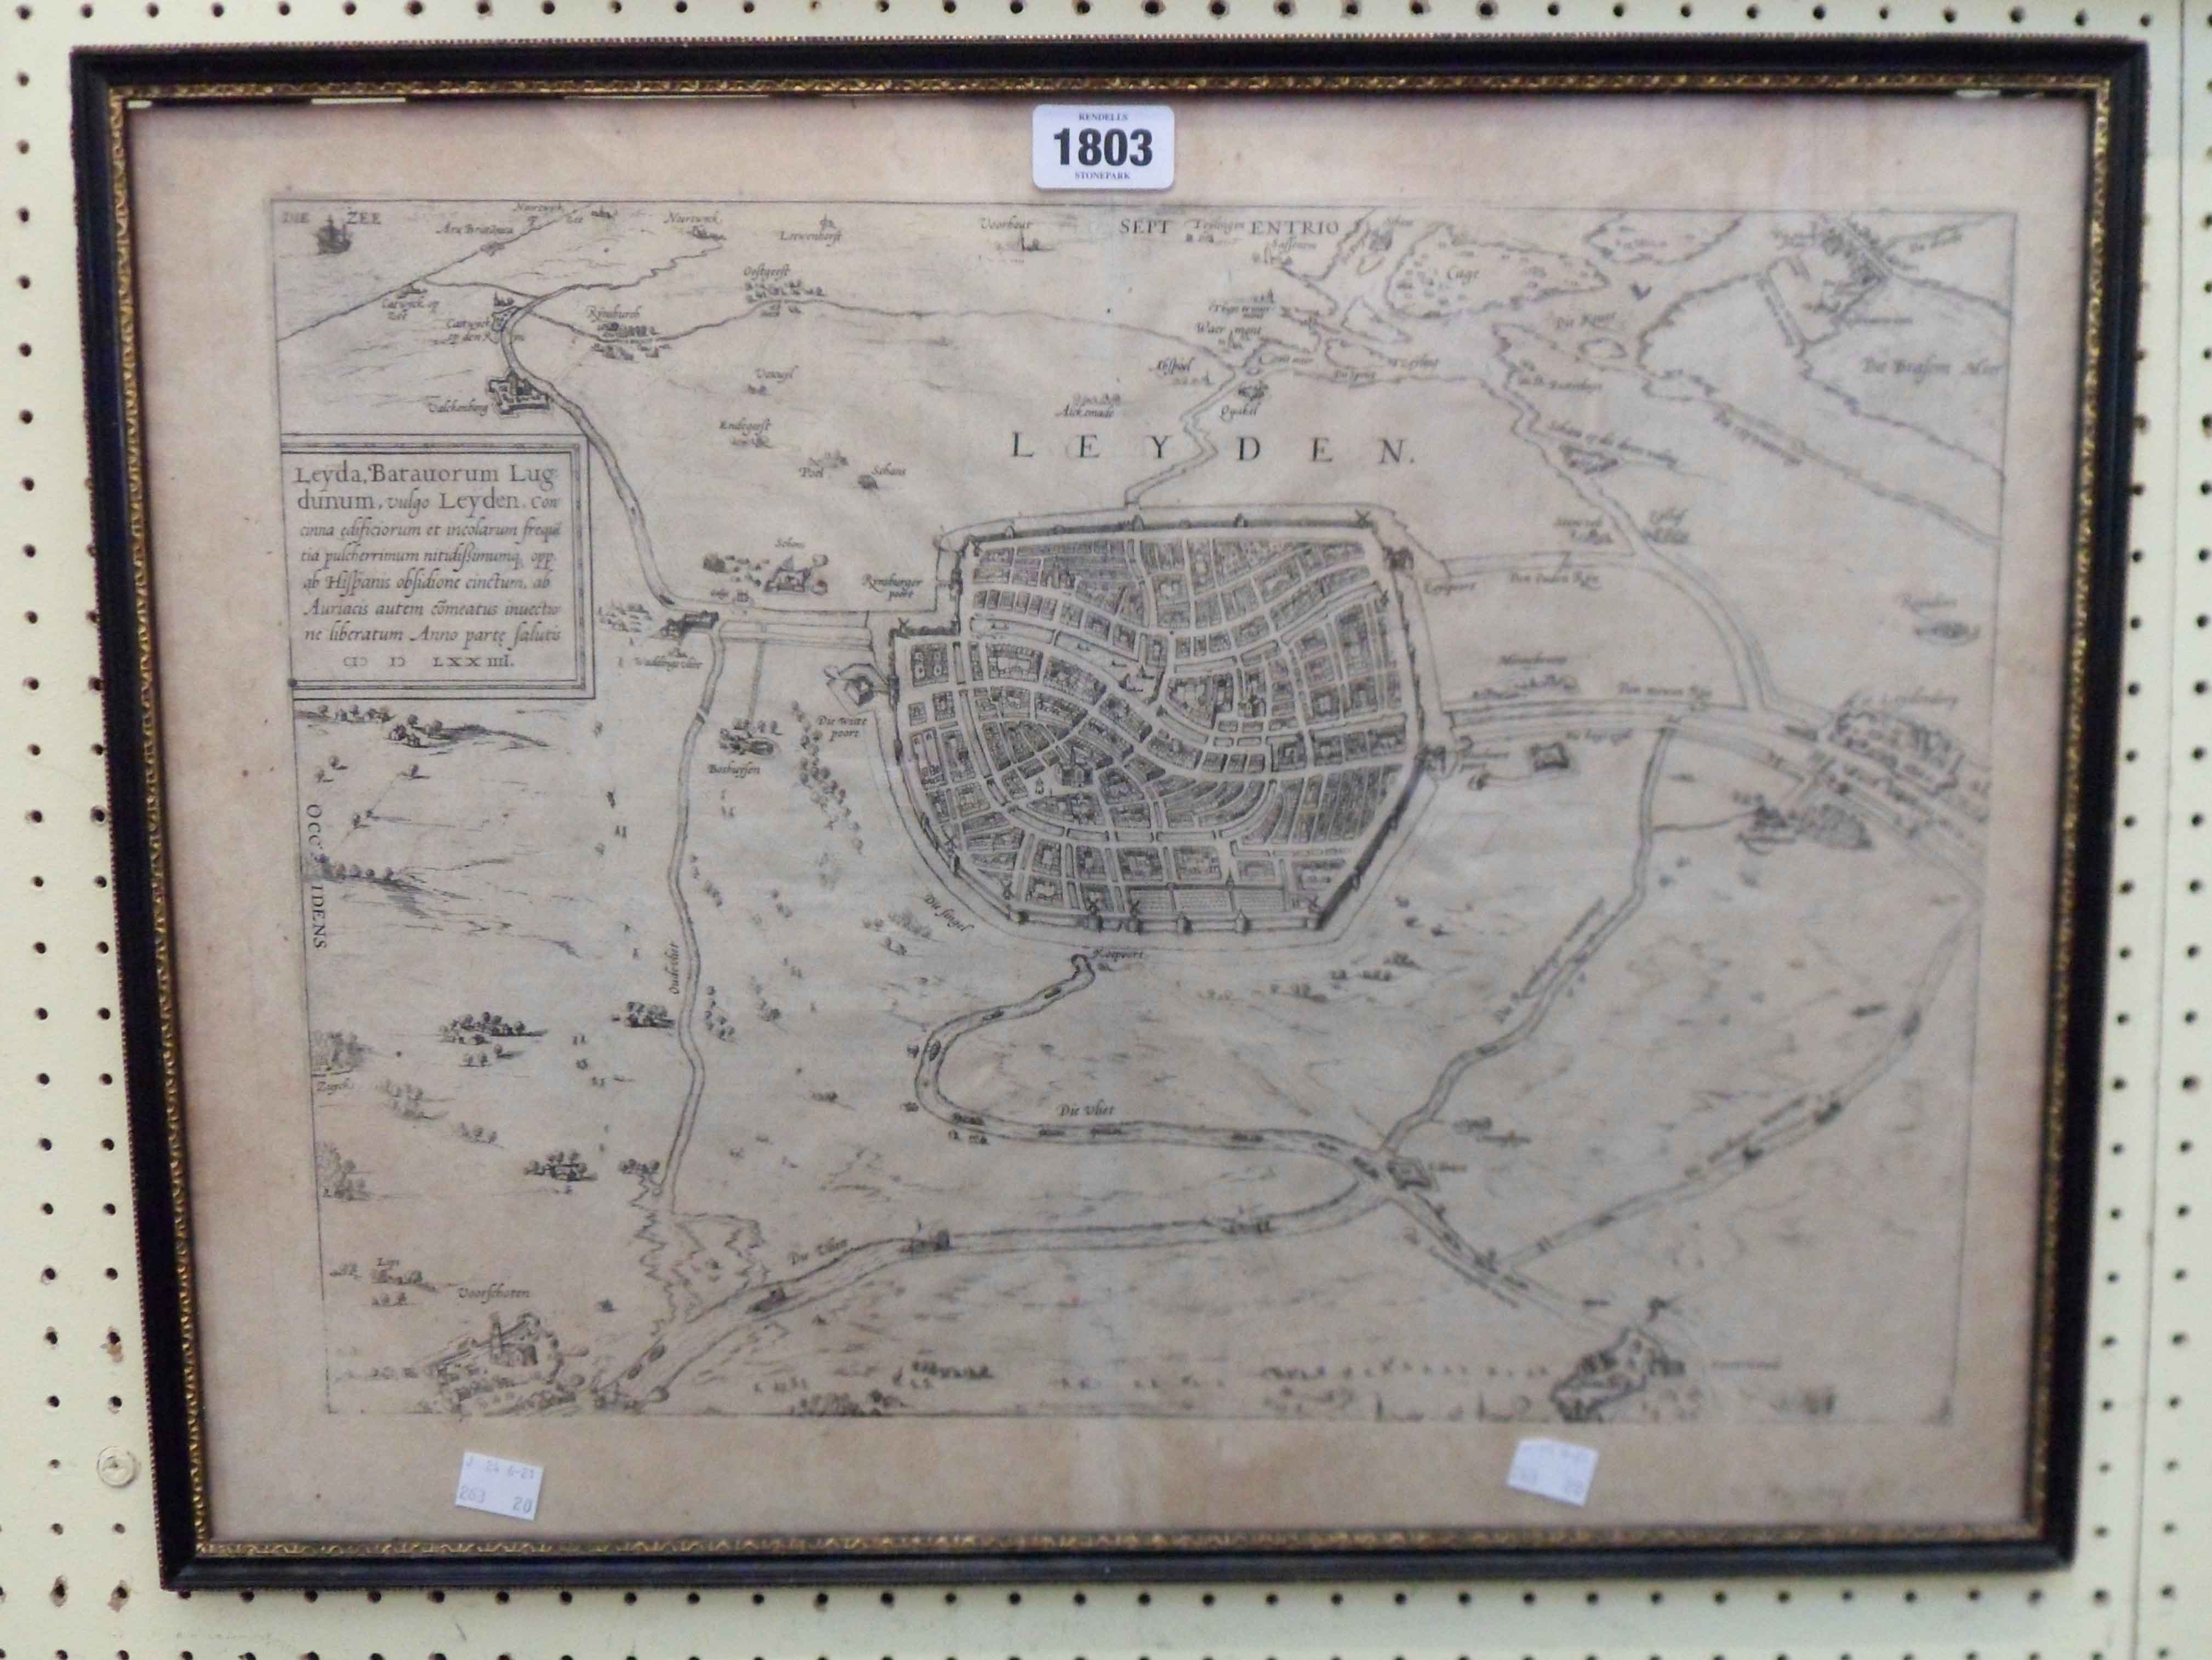 Franz Hogenberg: a Hogarth framed antique monochrome map of Leyden with text verso from the 1593